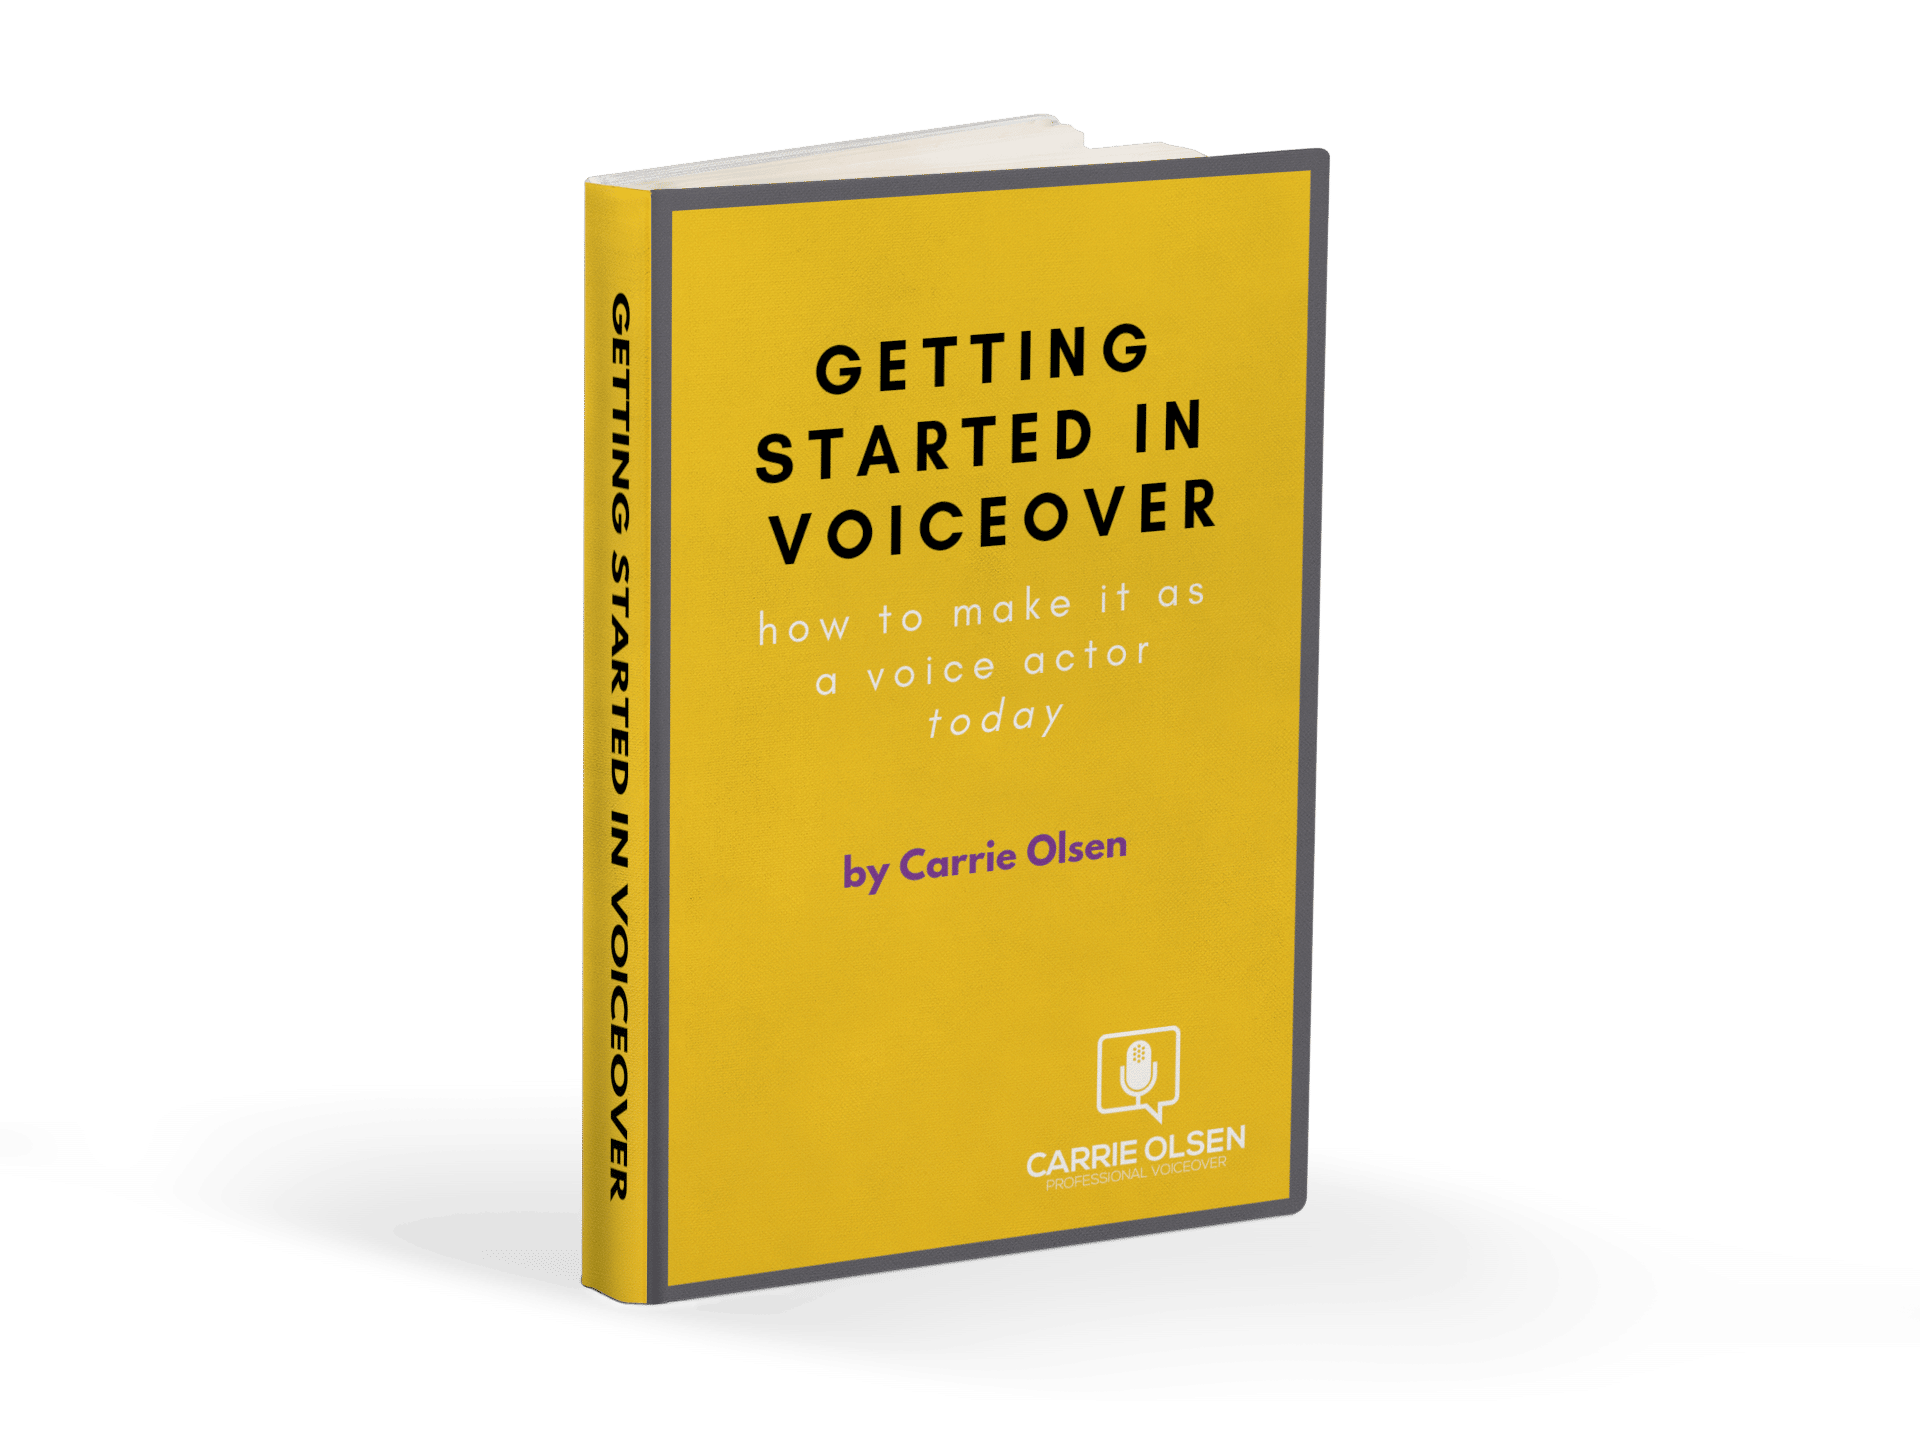 getting started voiceover work book